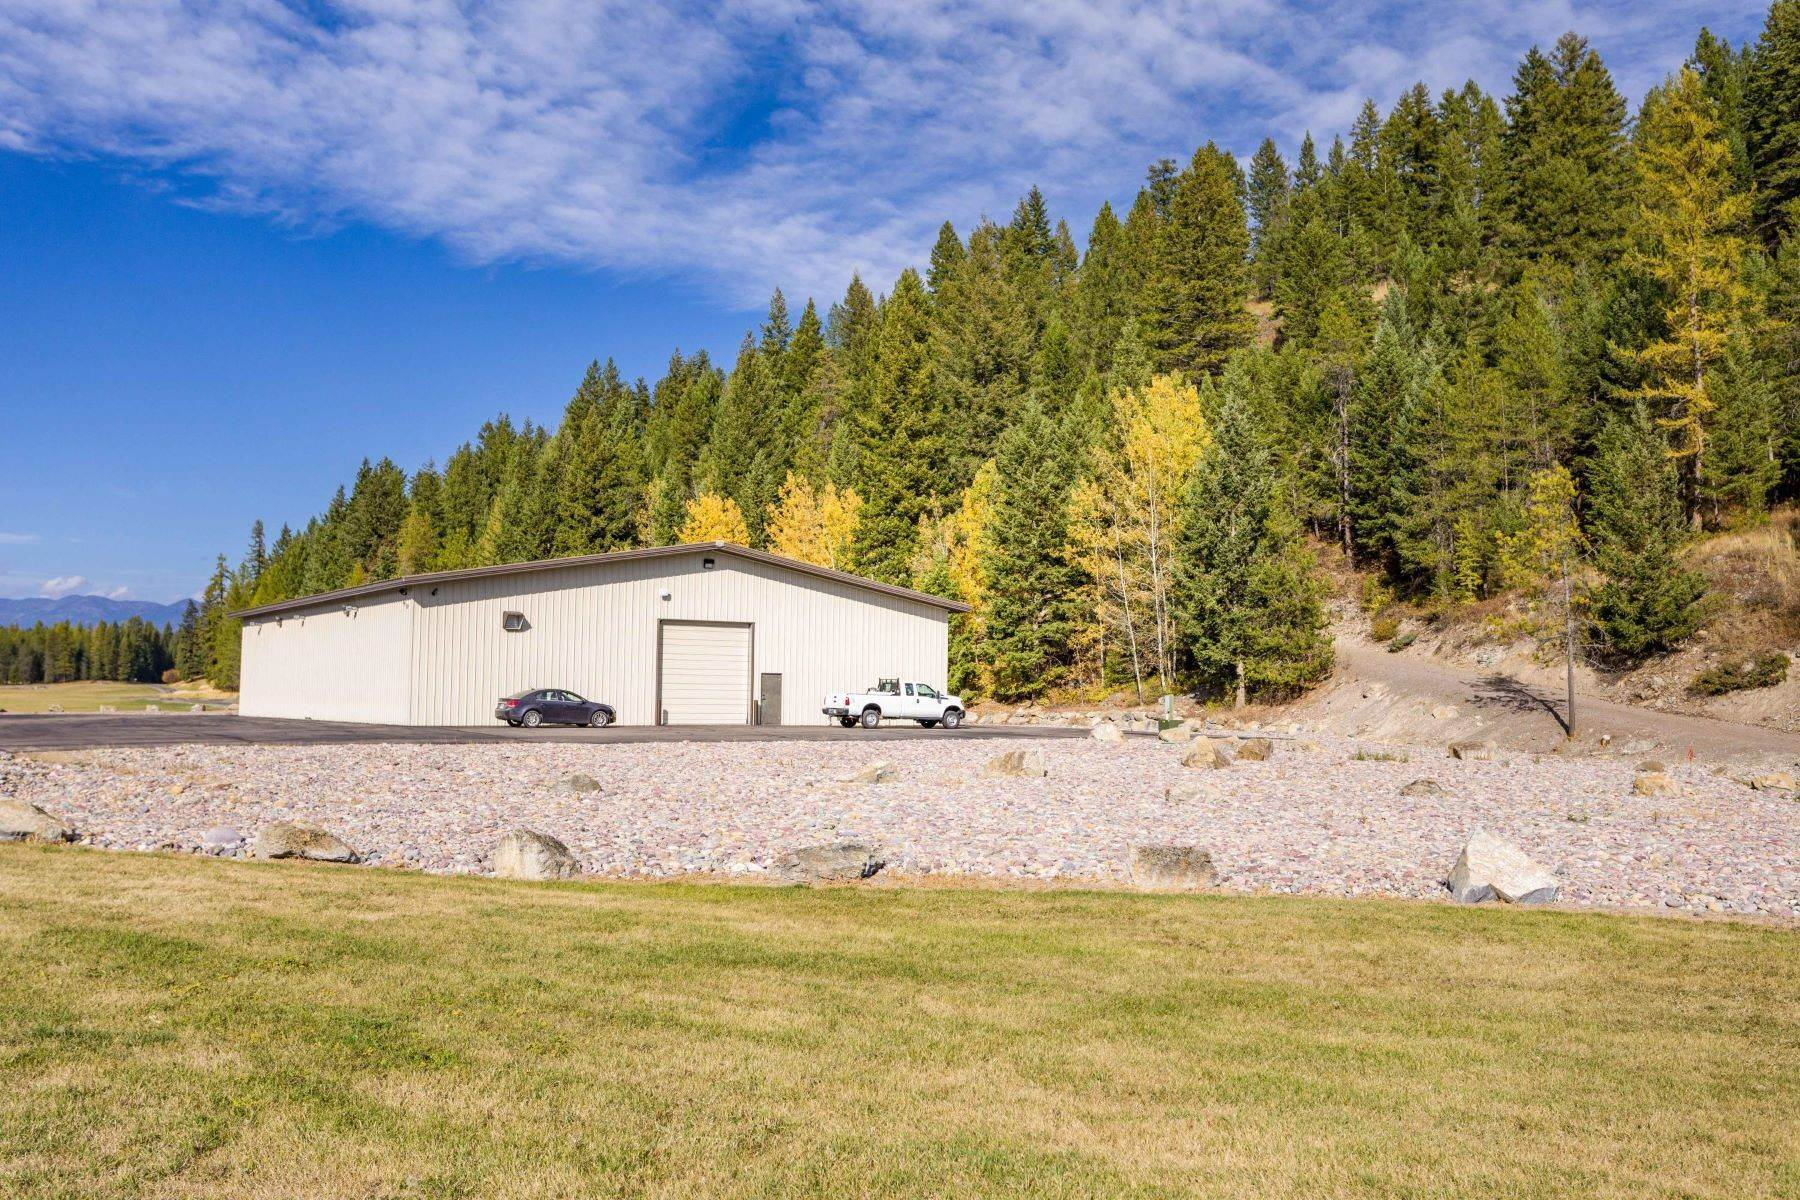 32. Land for Sale at Northwest Montana Forest, Meadows and Ponds 295 Garland Lane Whitefish, Montana 59937 United States